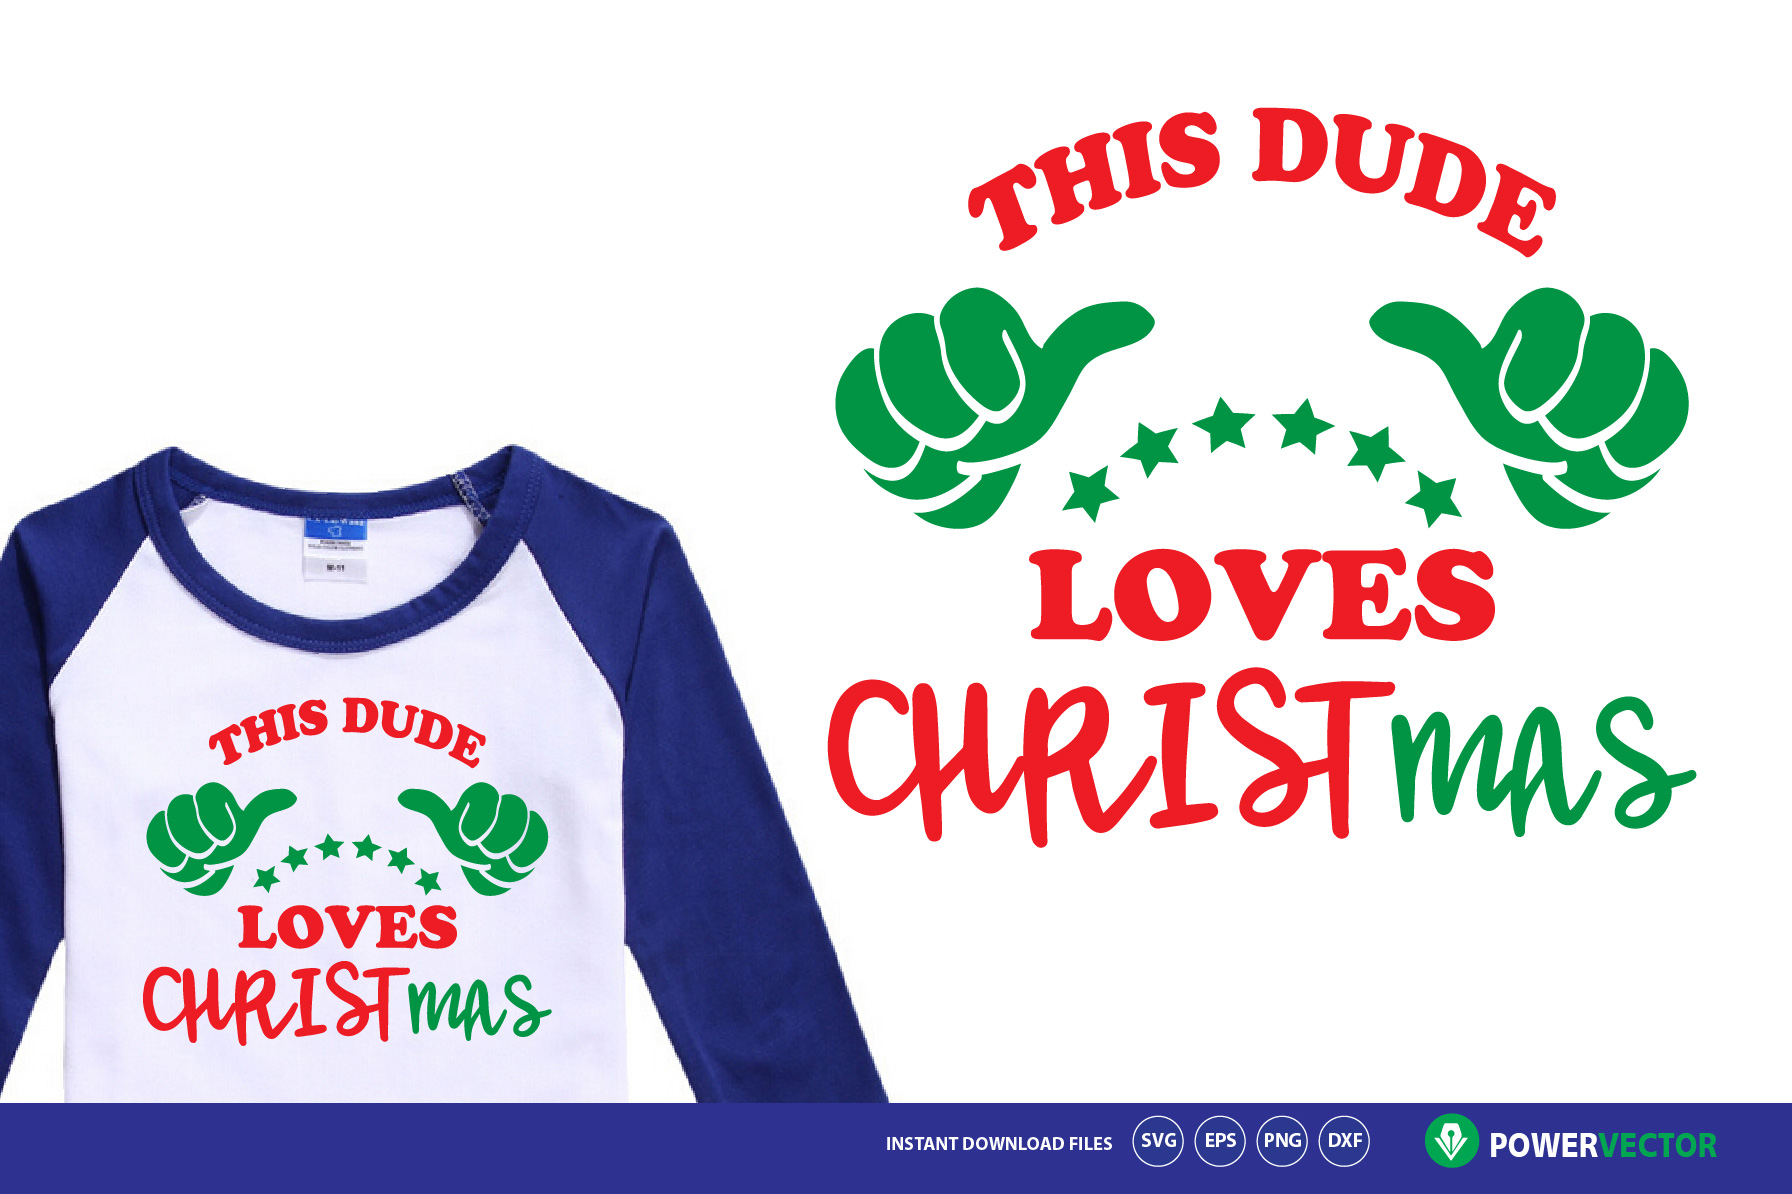 Download Free This Guy Loves Christmas Svg Graphic By Powervector Creative for Cricut Explore, Silhouette and other cutting machines.